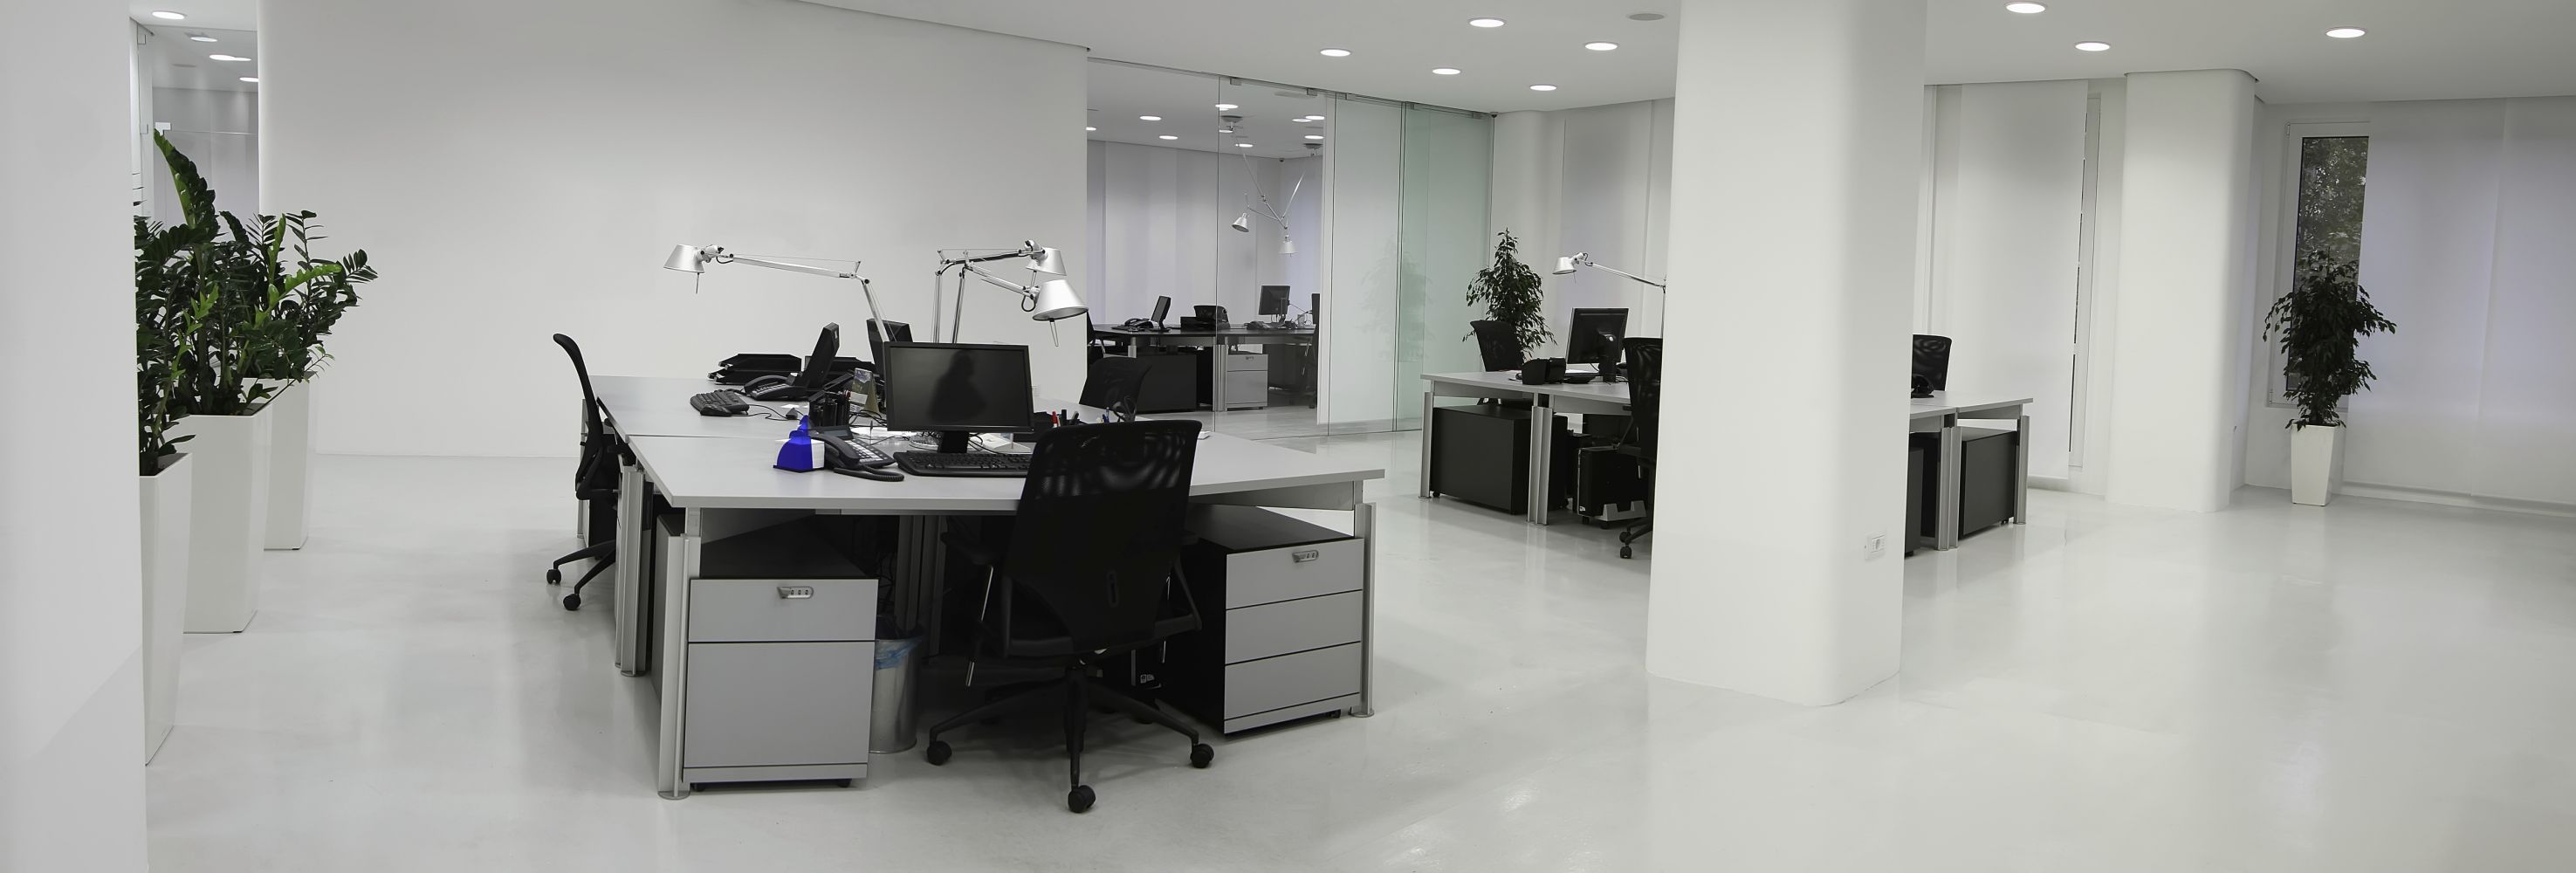 Clean office thanks to commercial cleaning services in Tauranga